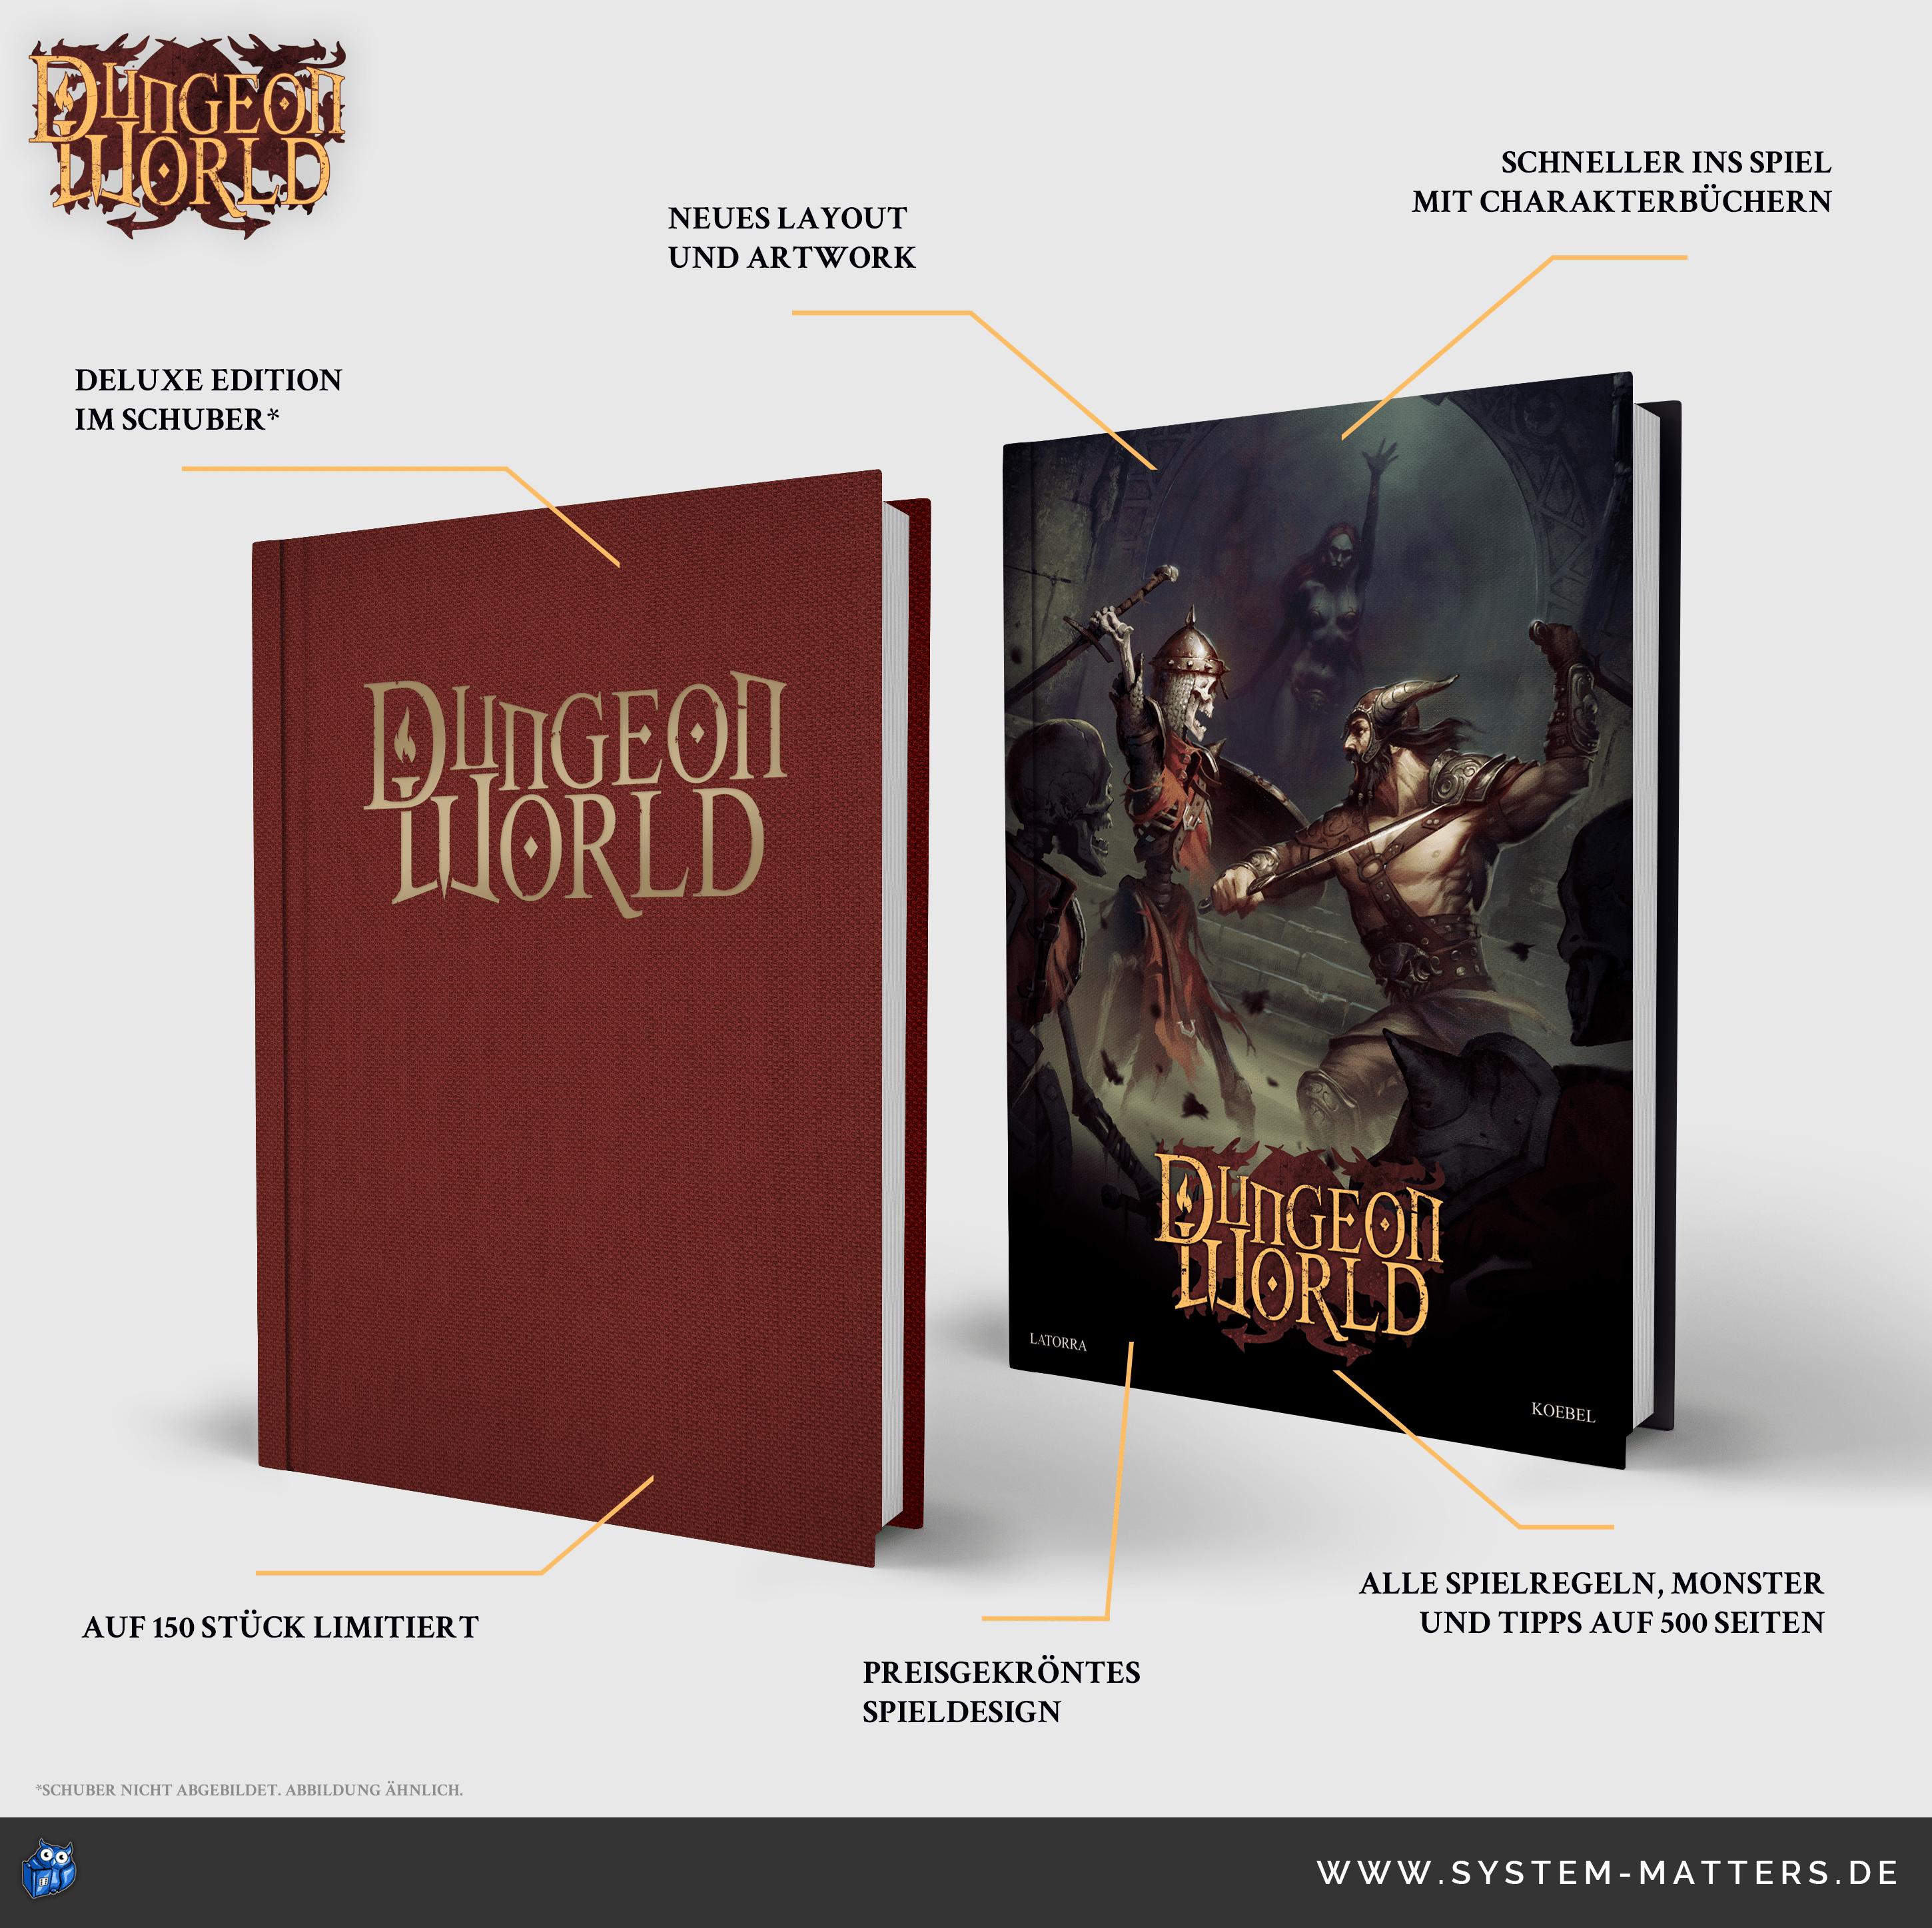 Dungeon World: Standard und Deluxe Edition (Image: System Matters)